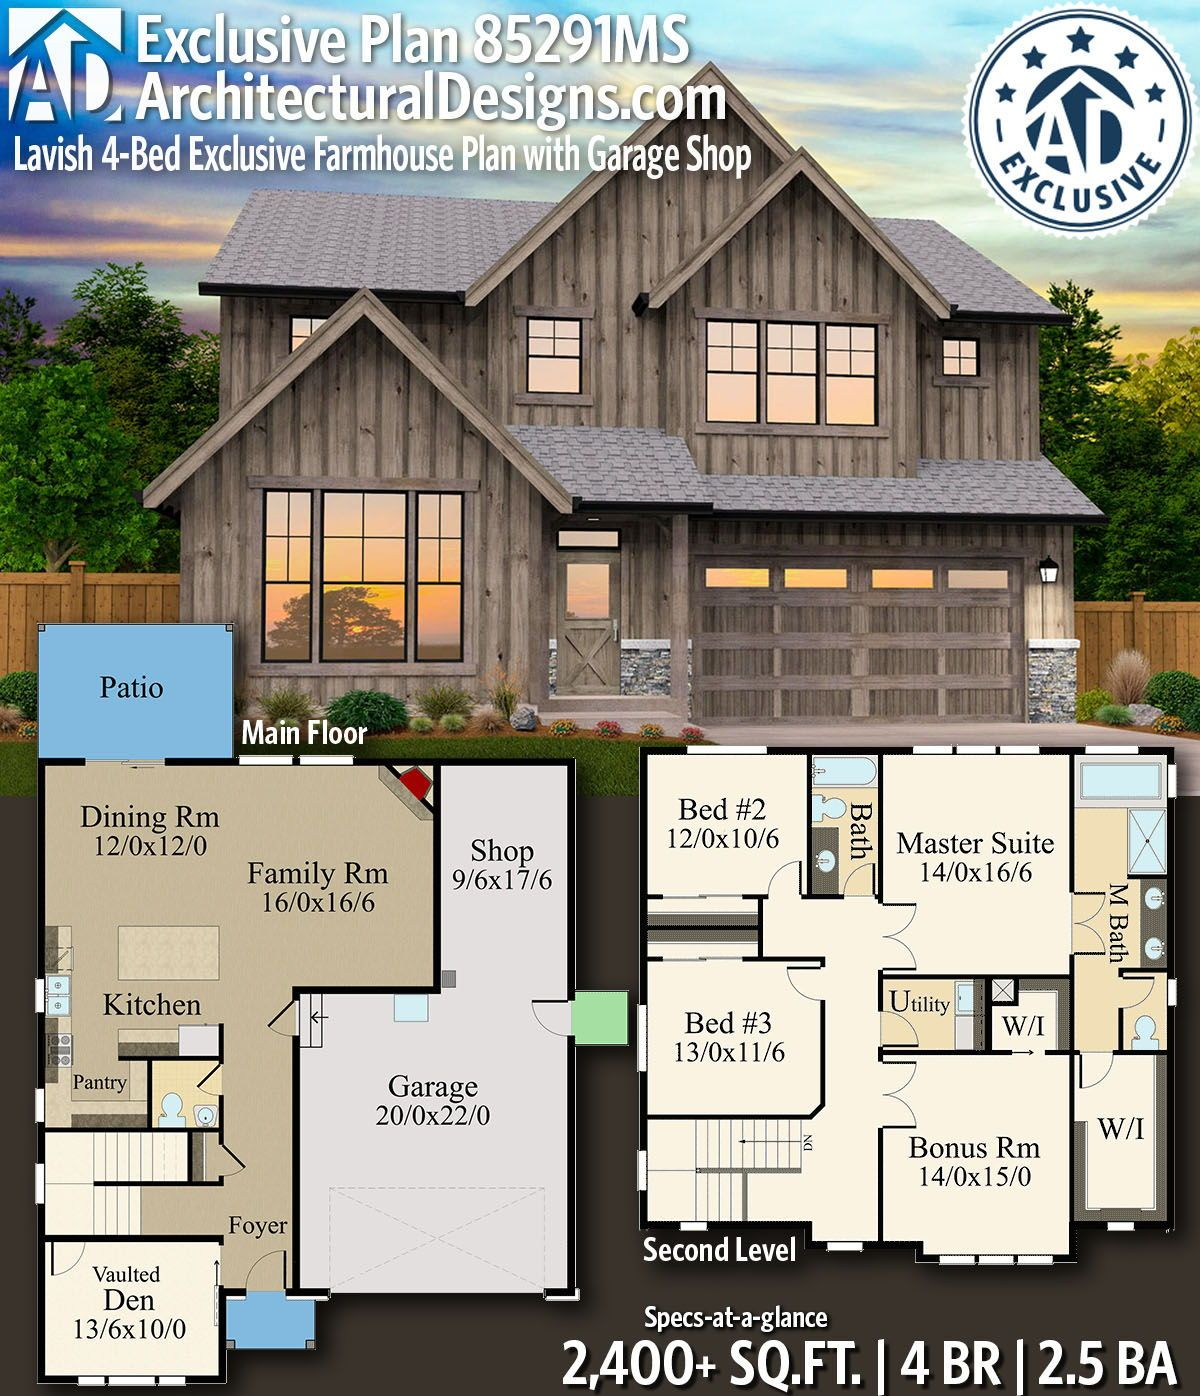 Plan 85291ms Lavish 4 Bed Exclusive Farmhouse Plan With Garage Shop Rustic House Plans Farmhouse Plans House Plans